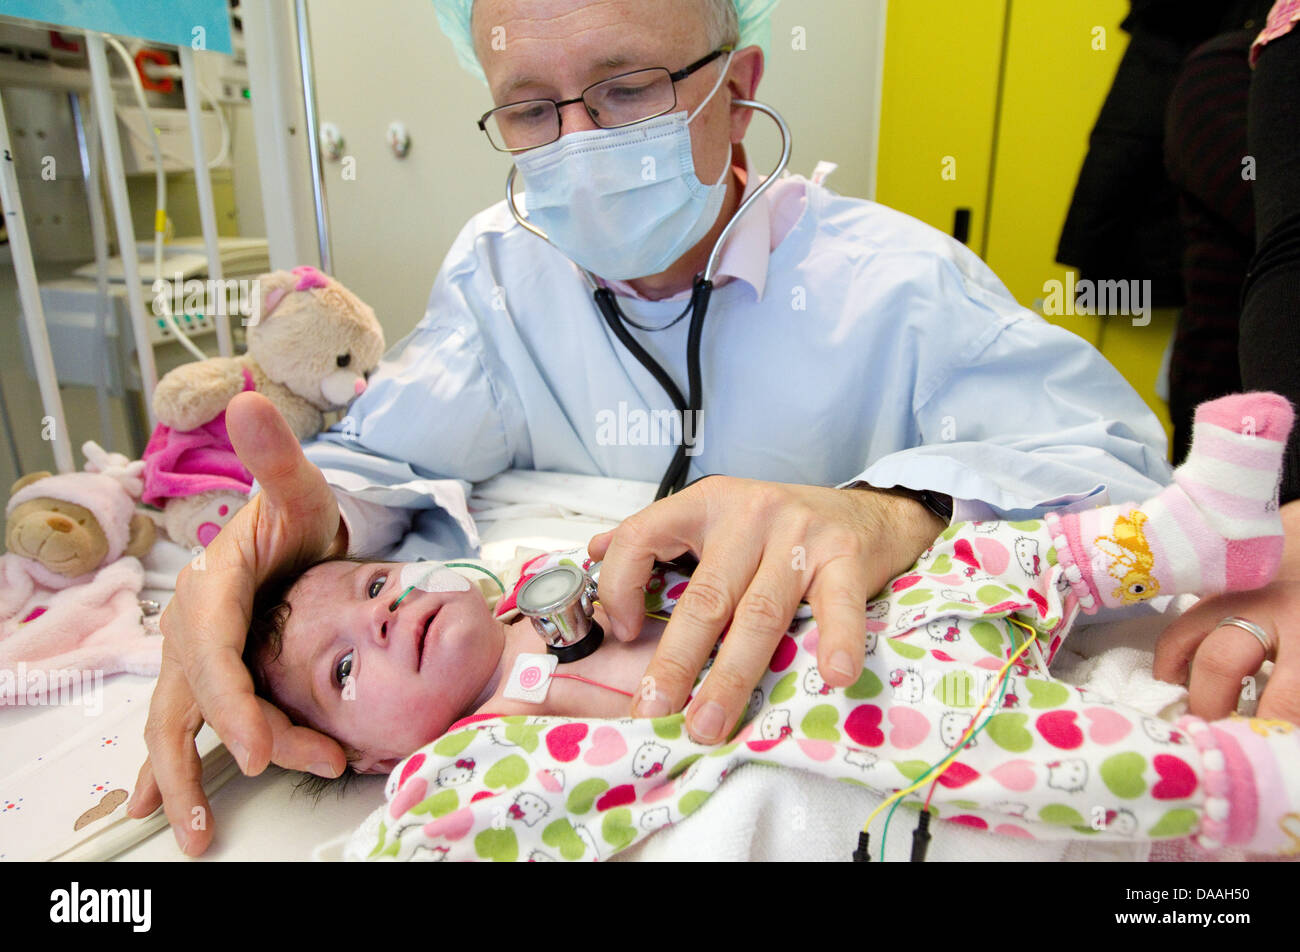 Dr. Hans Gerd Kehl, the commissionary head of the children's cardiology, checks upon the operated Ljuah Ahmeti - Stock Image